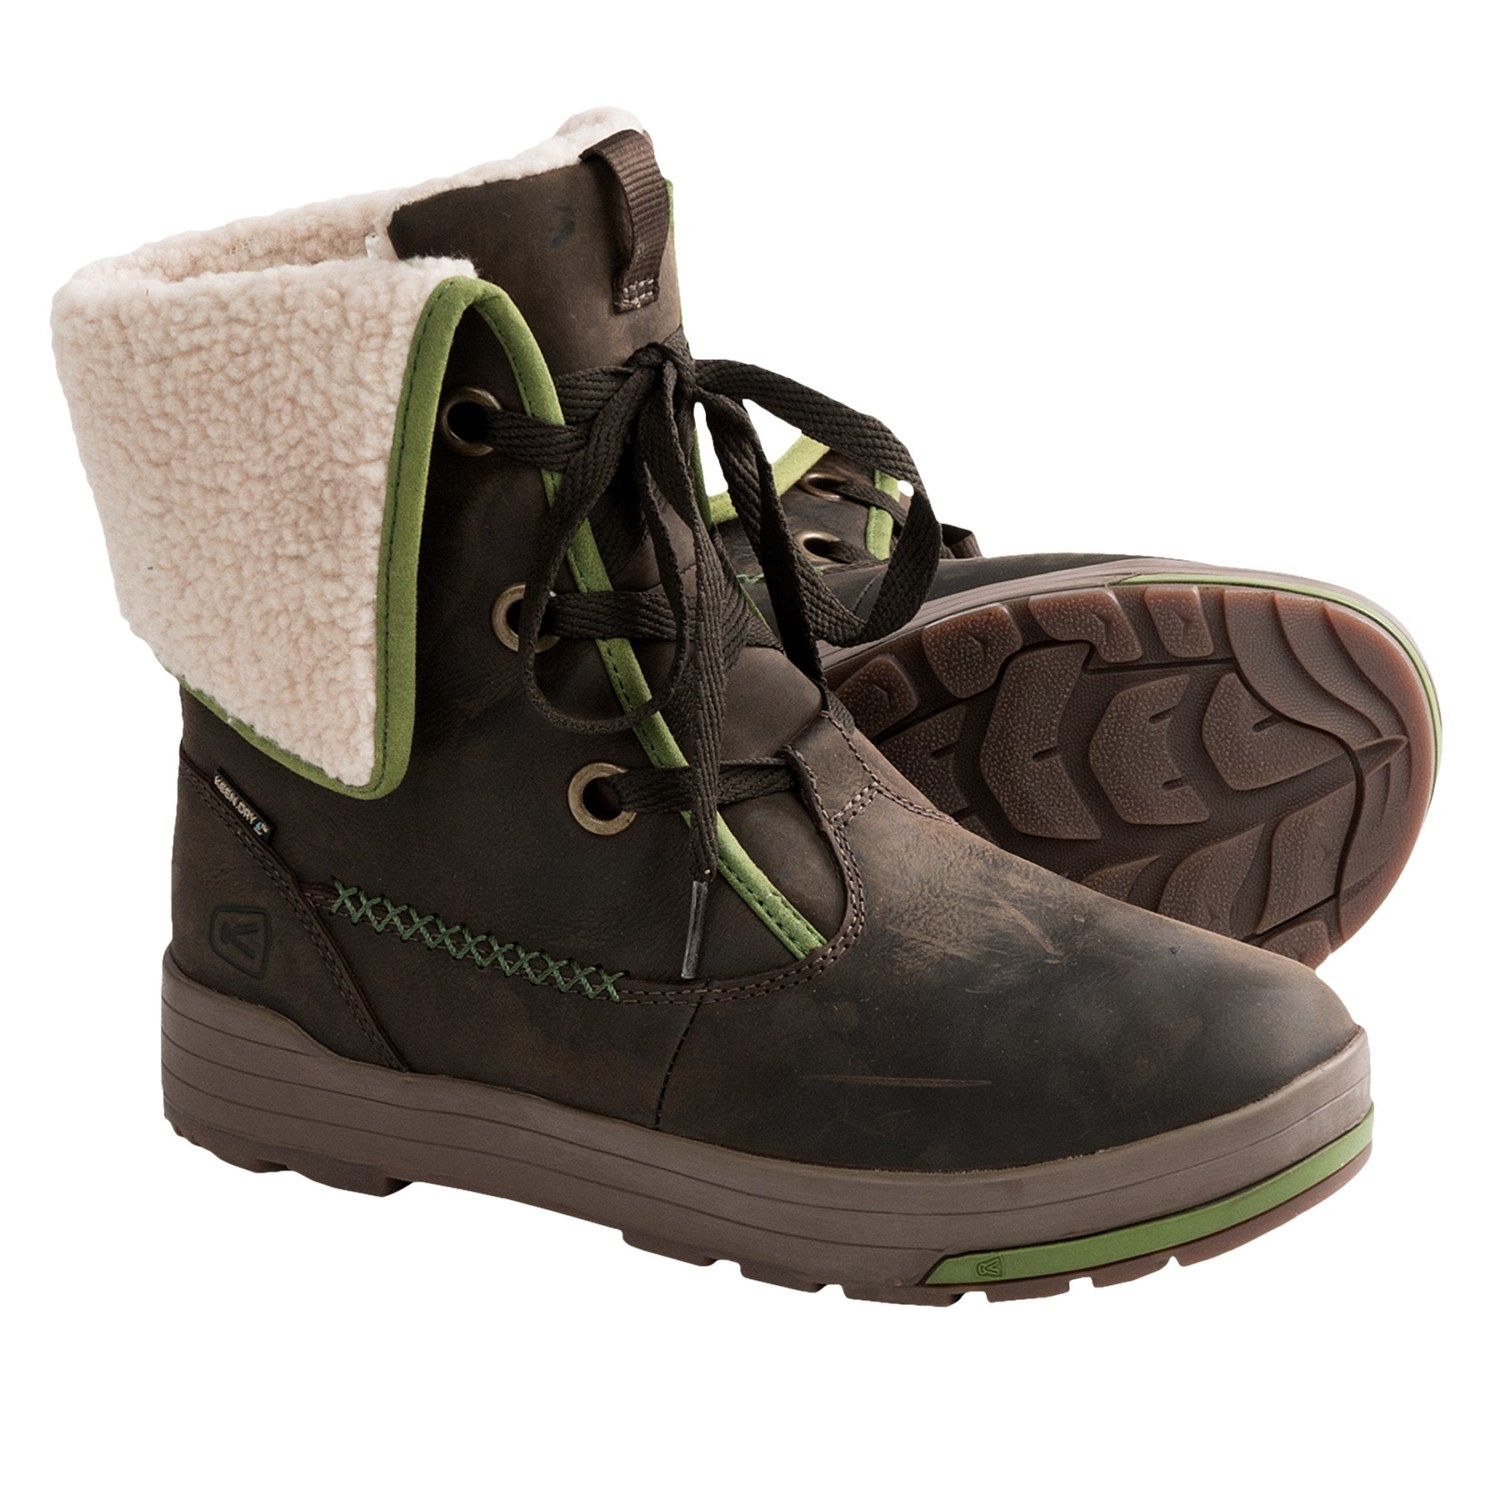 New  Plus Waterproof Boots  Removable Fleece Liner For Women In Black